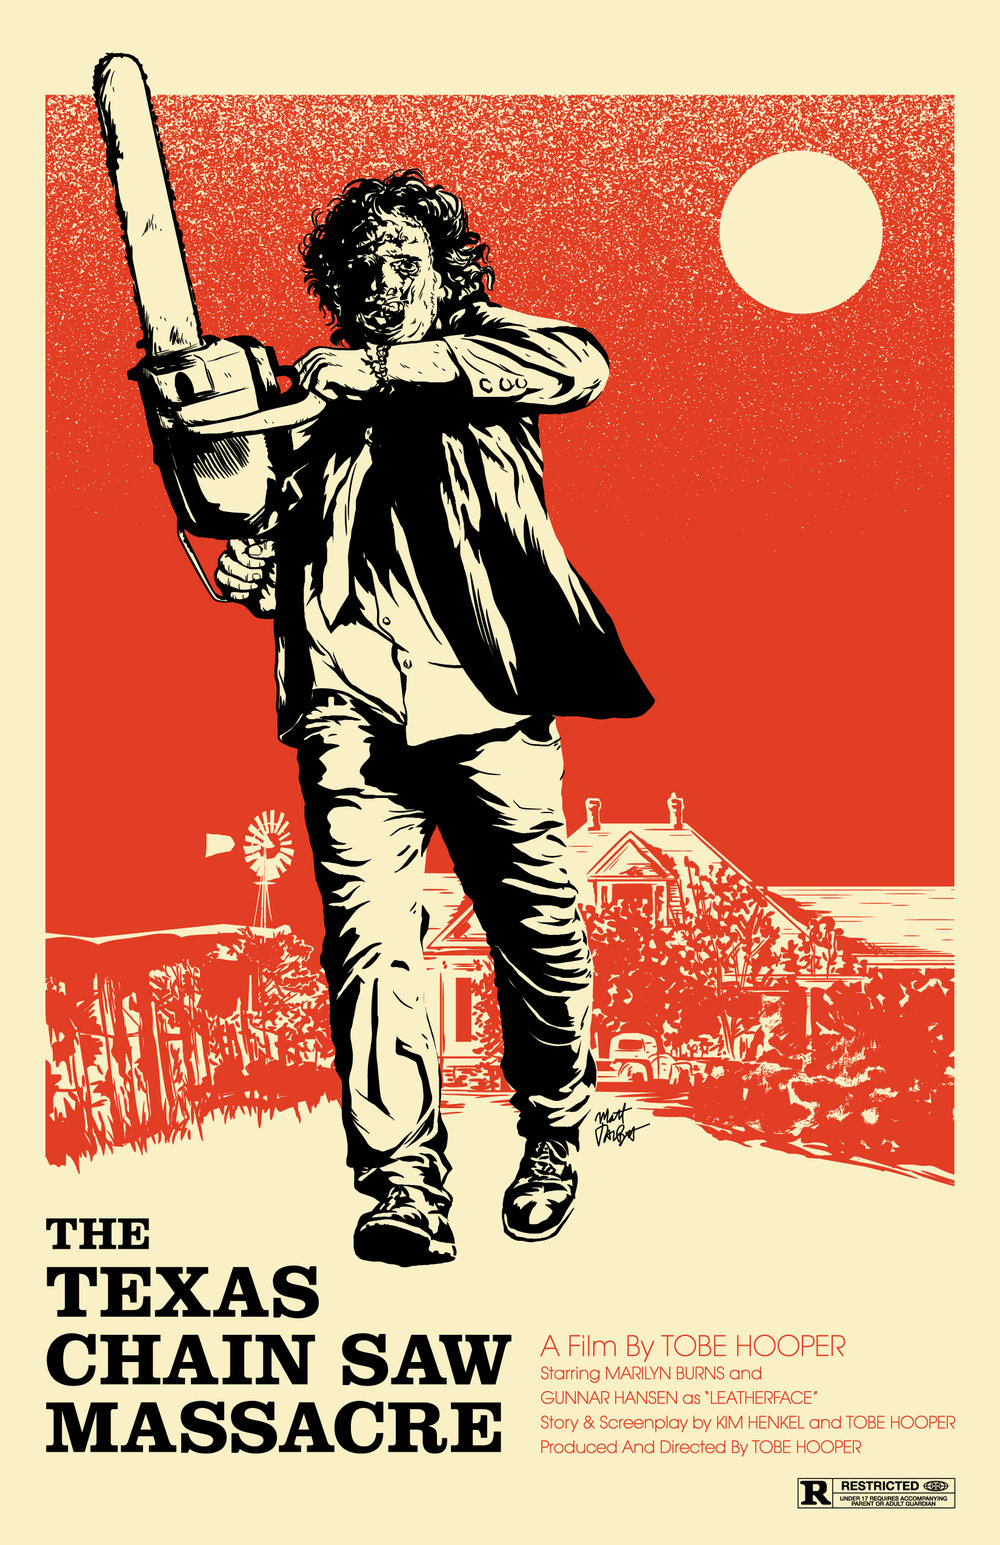 The Texas Chain Saw Massacre Poster by Matt Talbot